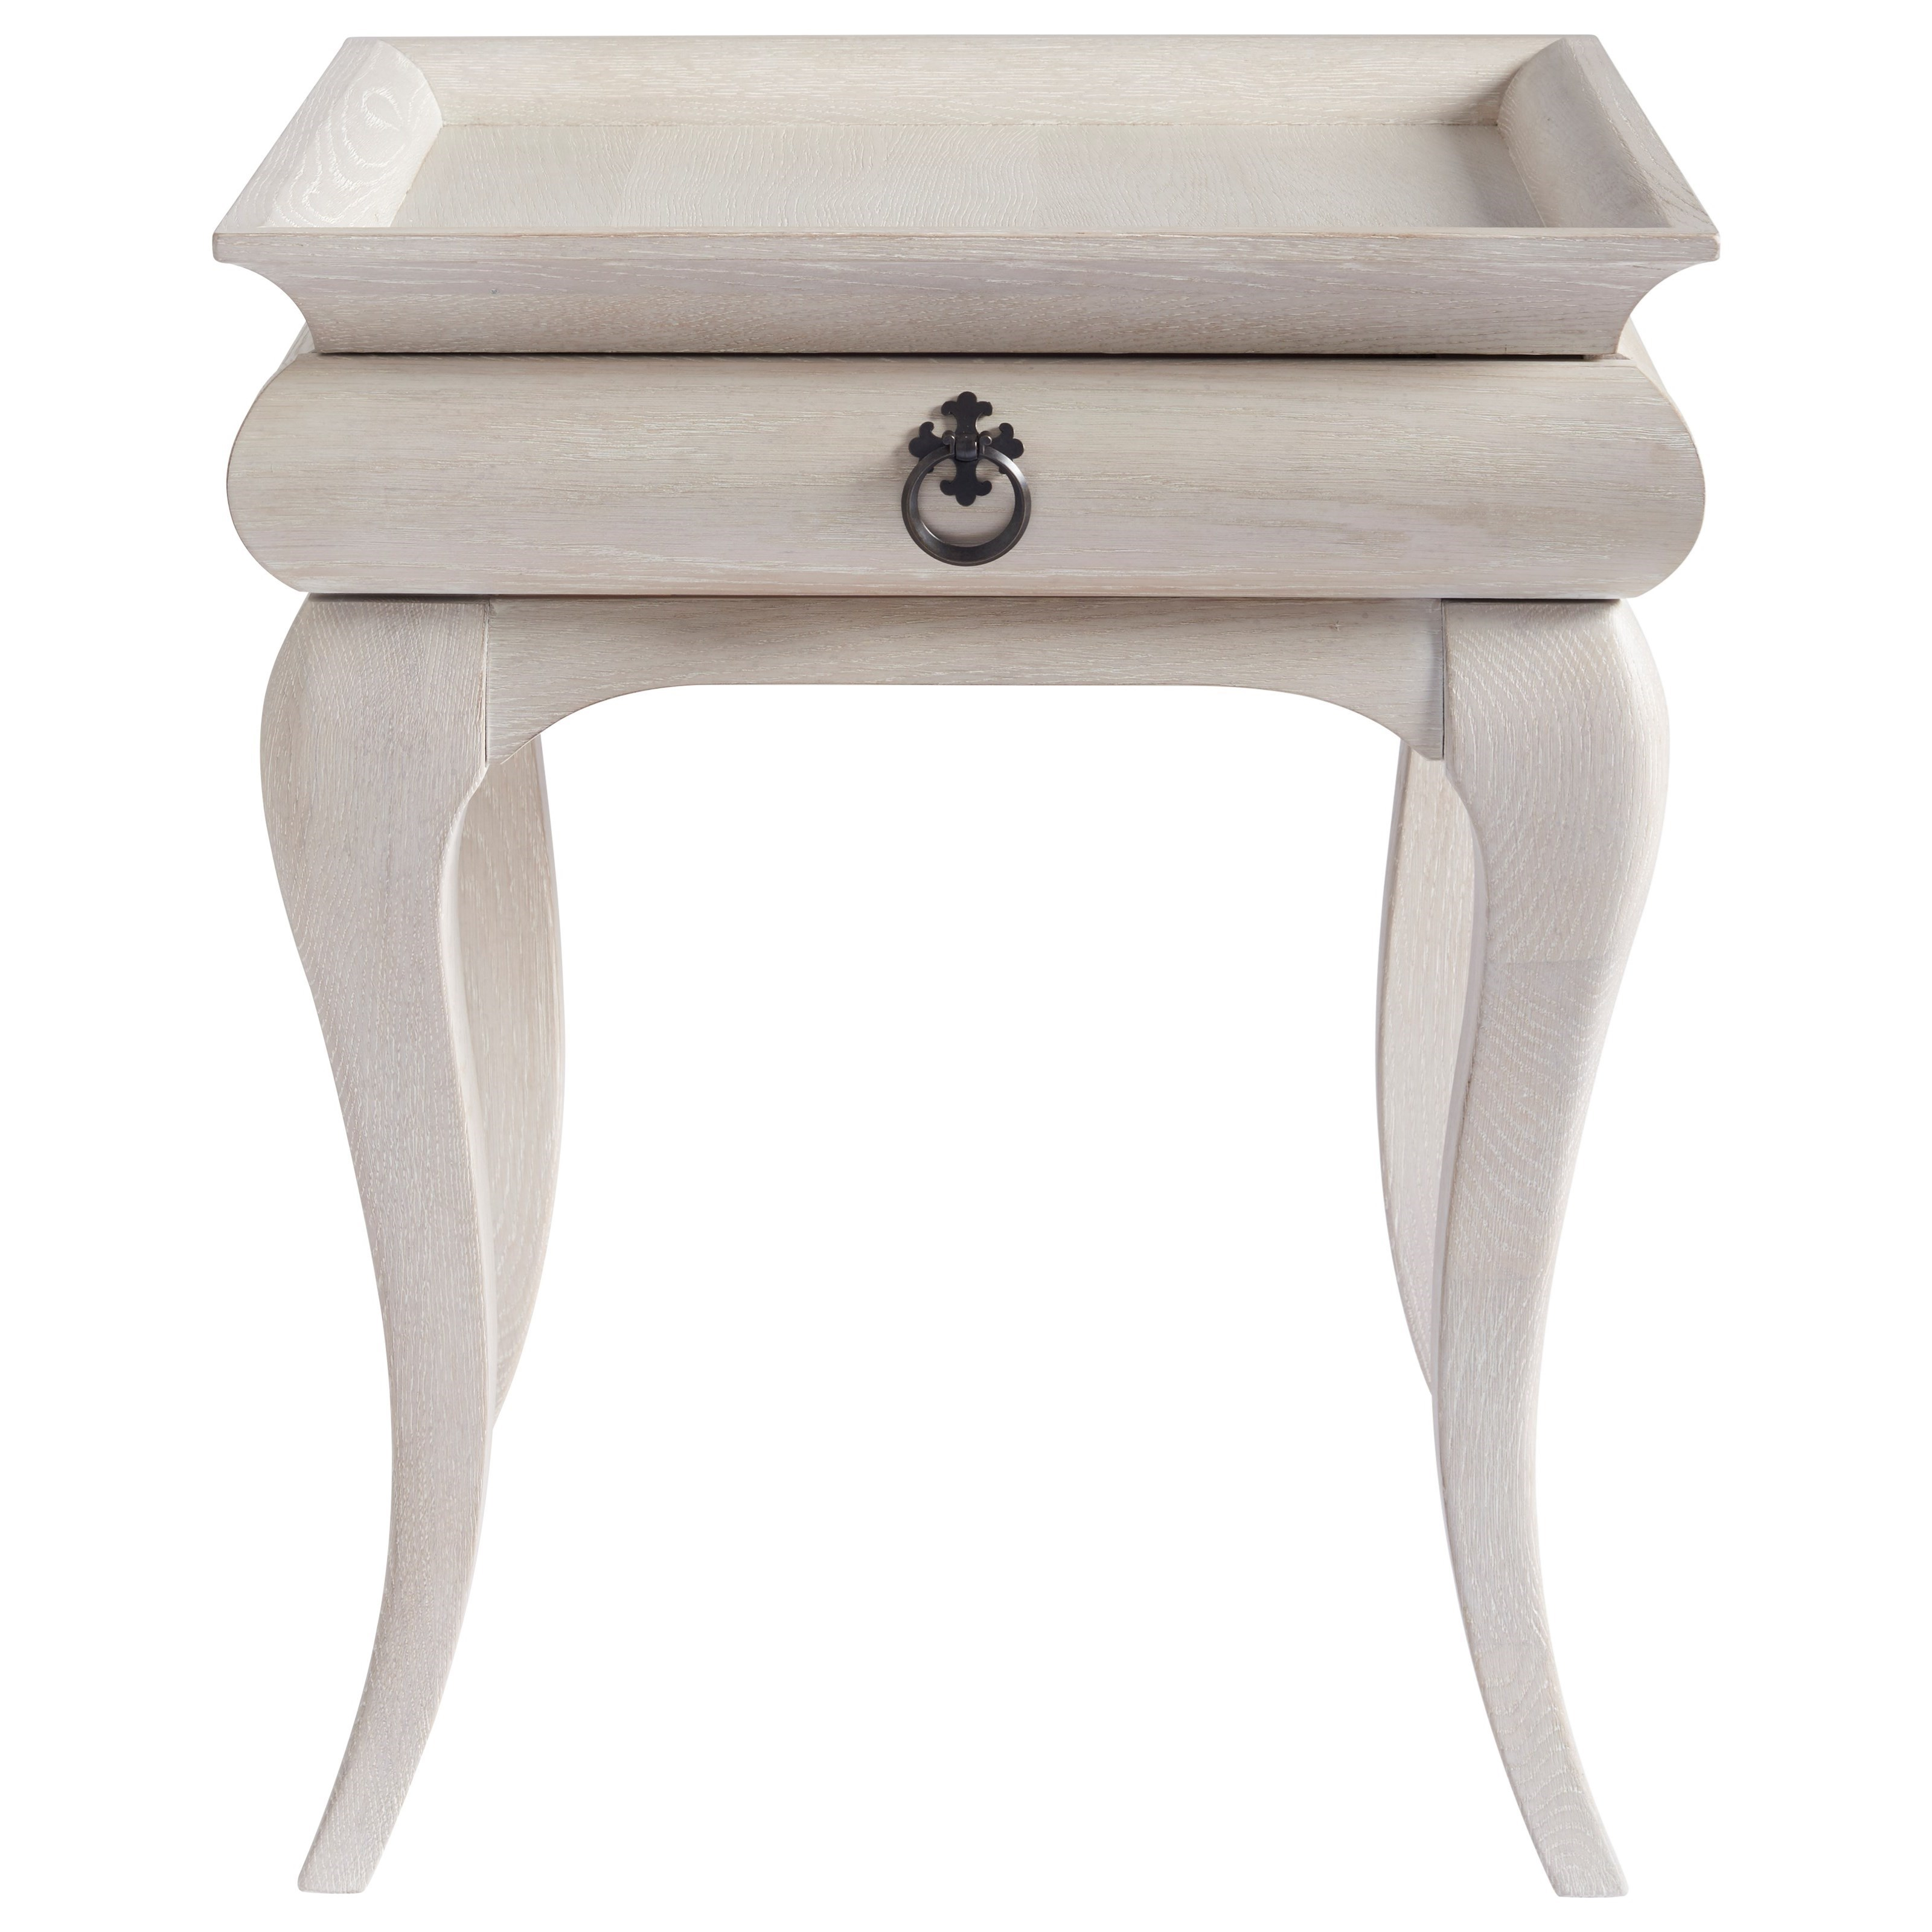 Charmant Paula Deen By Universal Bungalow Cottage End Table With A Drawer